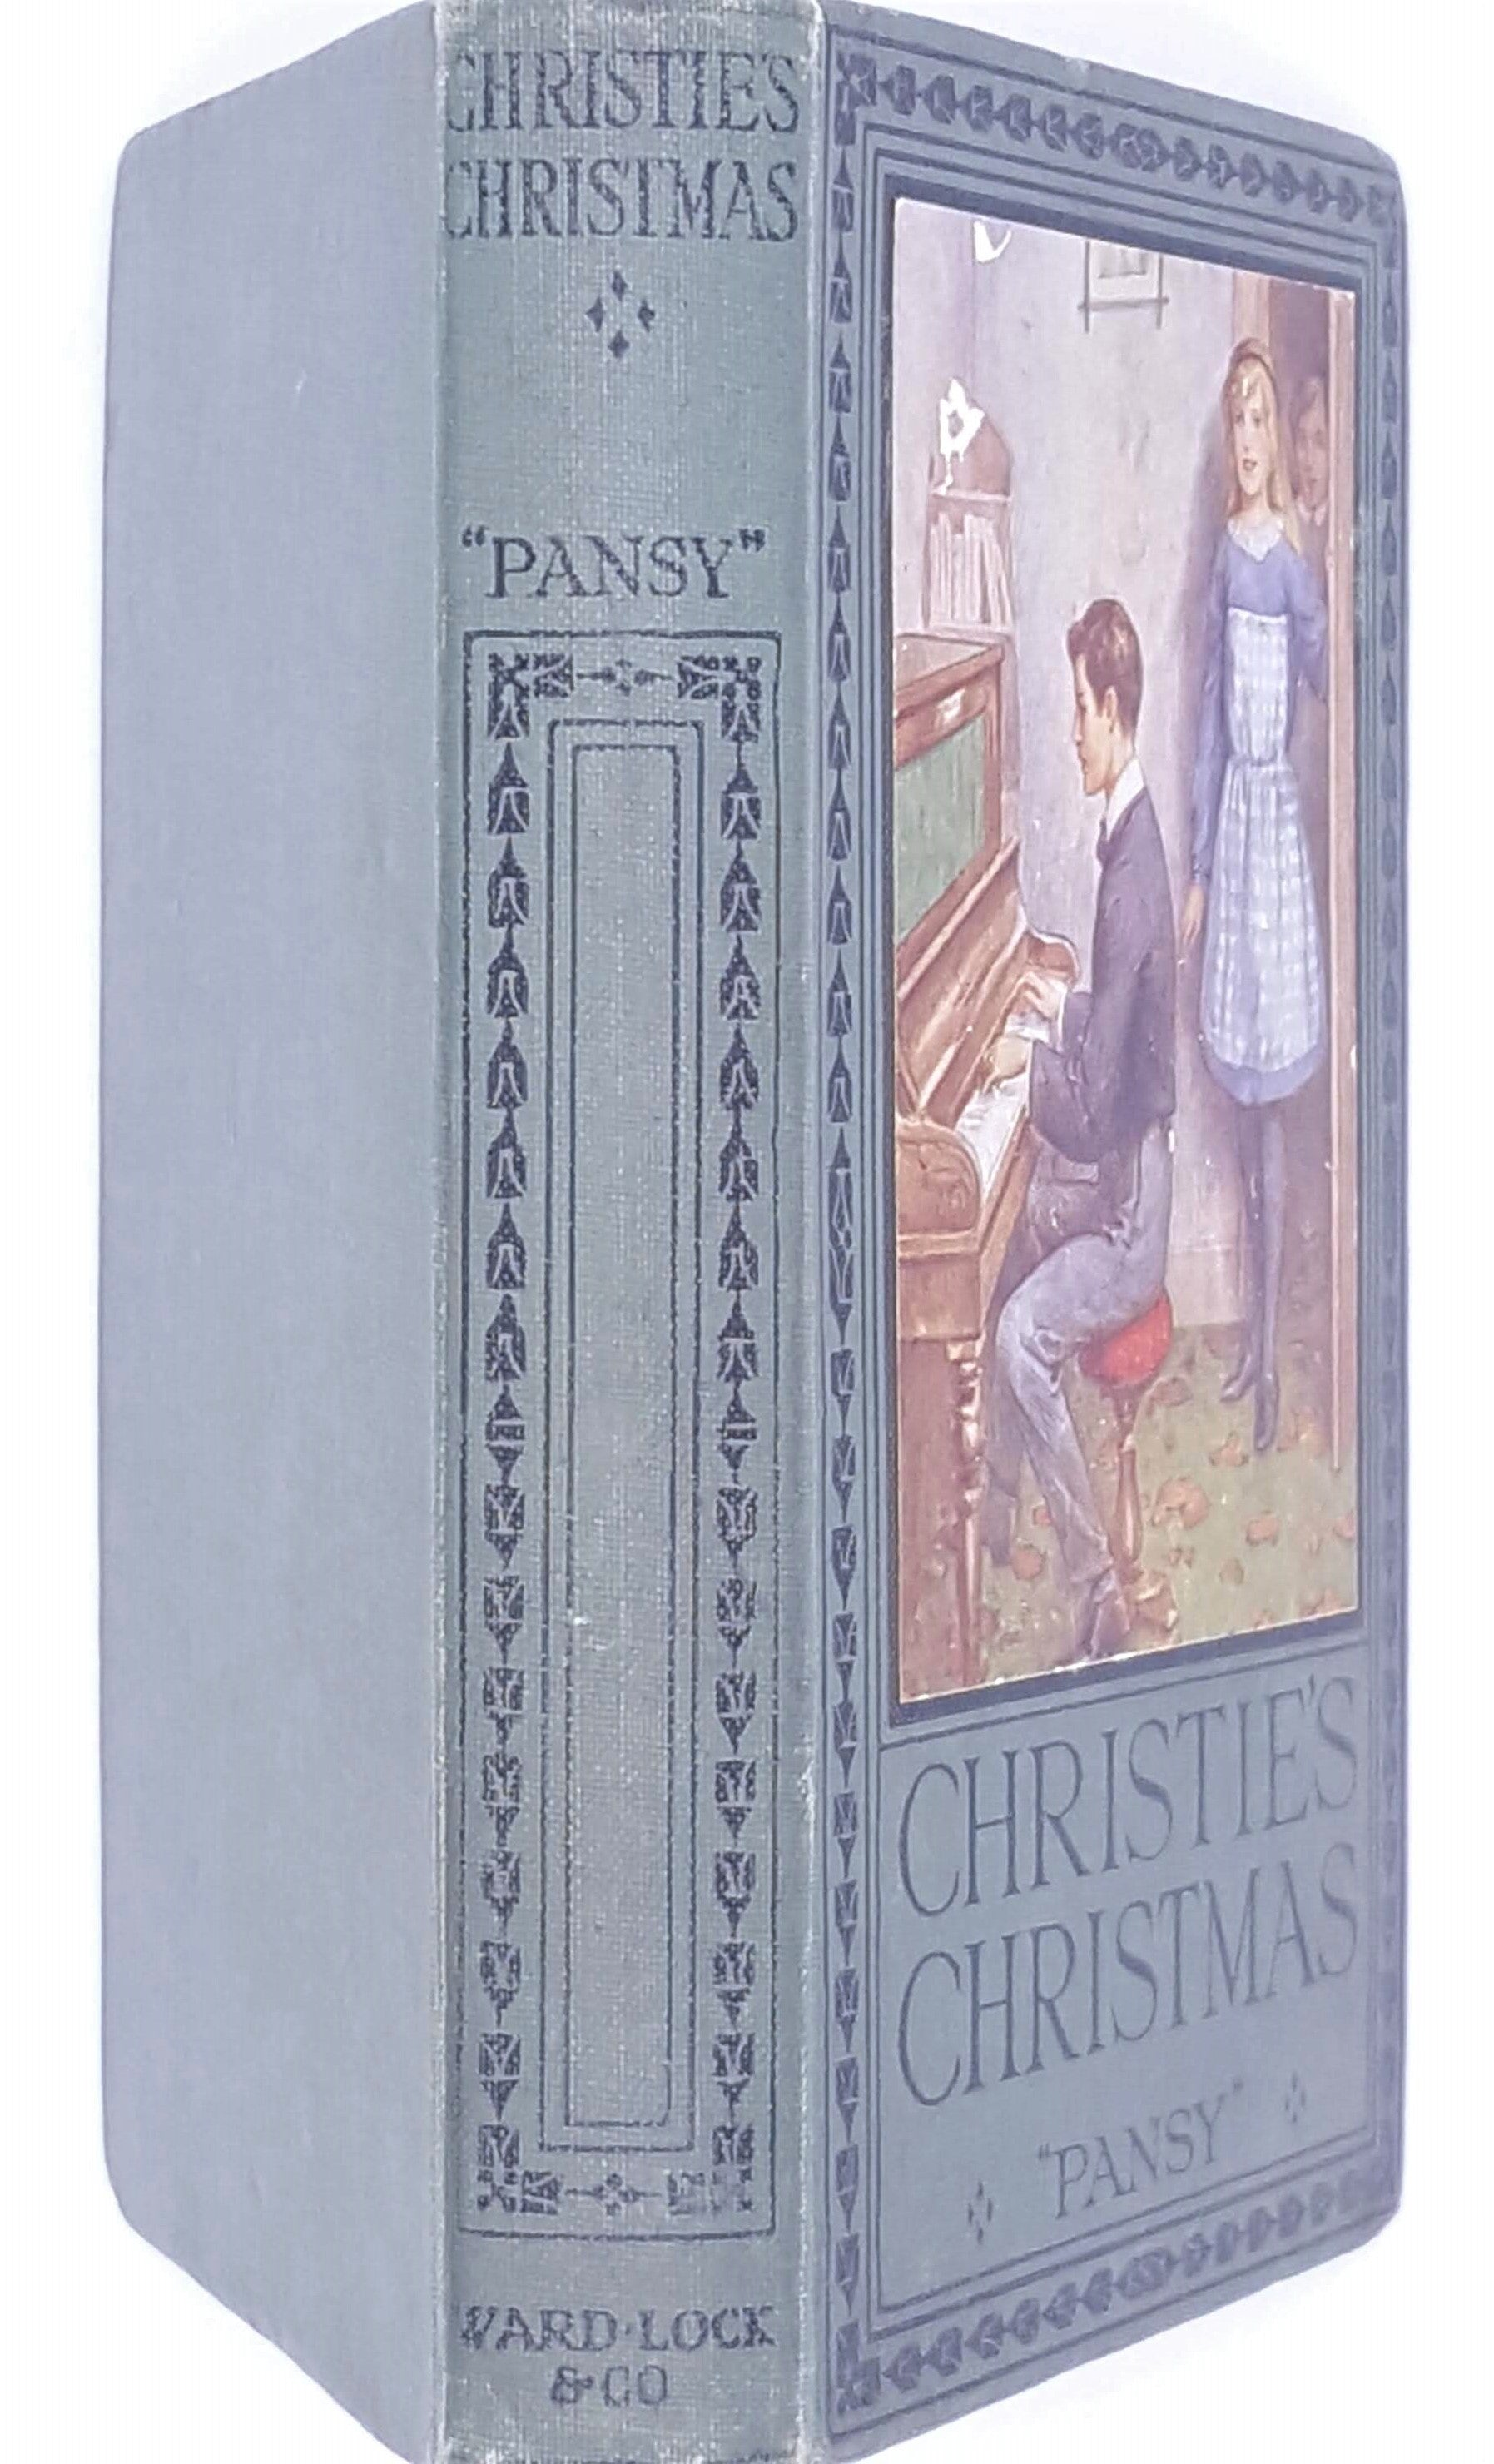 thrift-country-house-library-1925-decorative-christies-christmas-pansy-patterned-vintage-books-christmas-old-antique-ward-lock-and-co-childrens-classic-